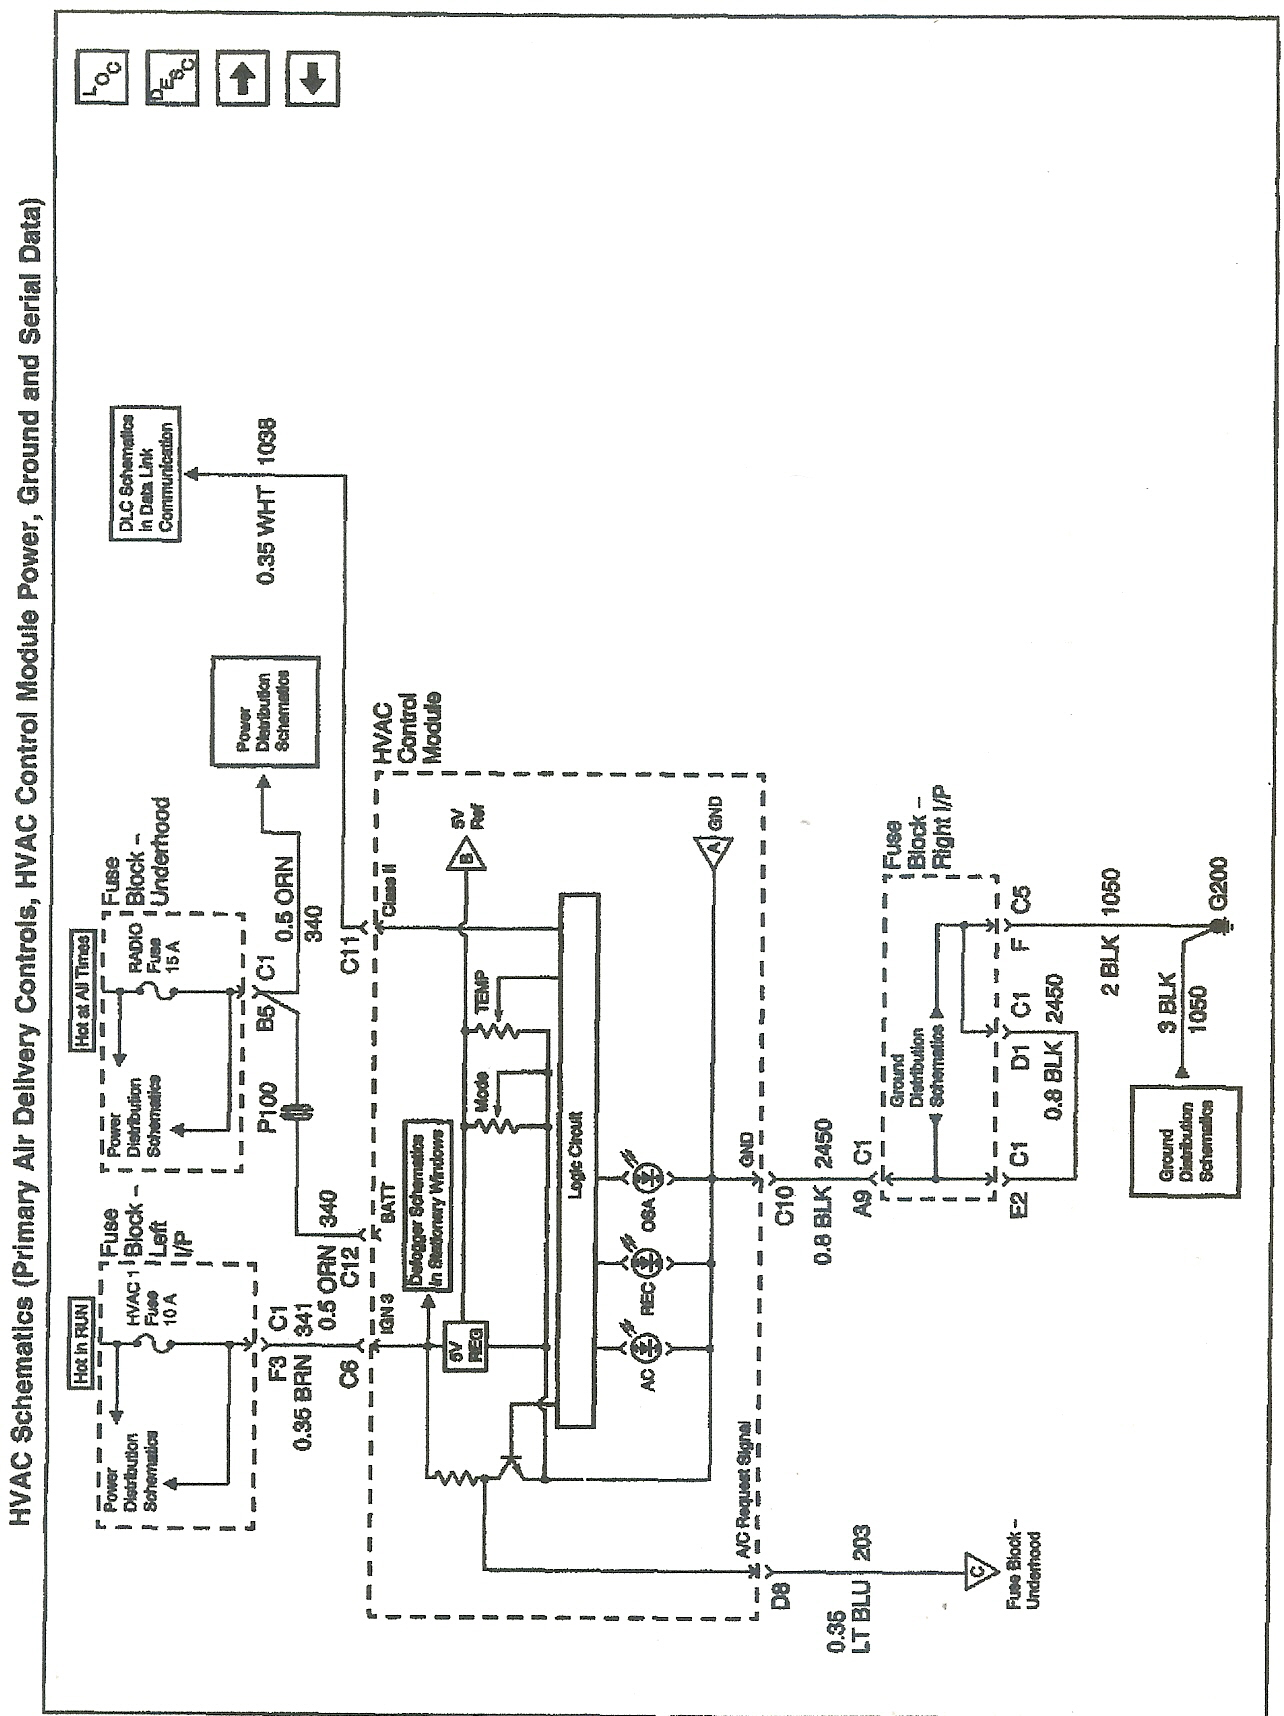 ... please advise where i can find a wiring diagram for a dorman 599 210 SC400  Wiring